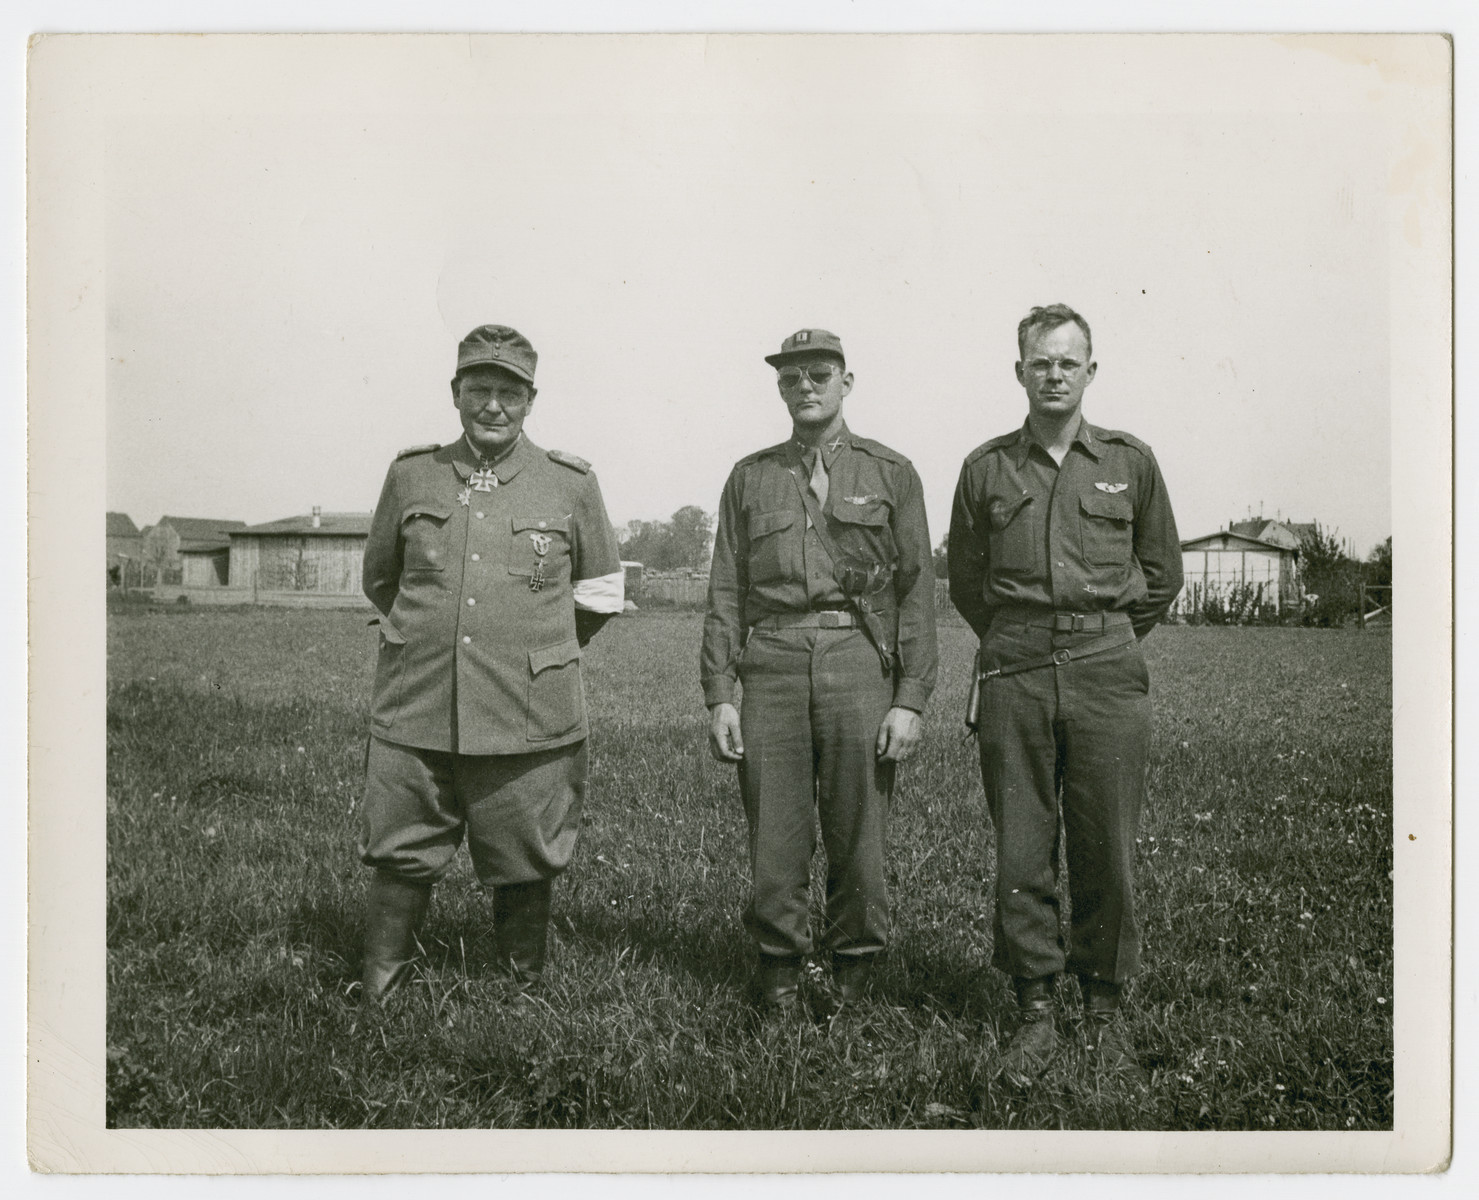 Herman Goering poses with two American soldiers shortly after his capture.